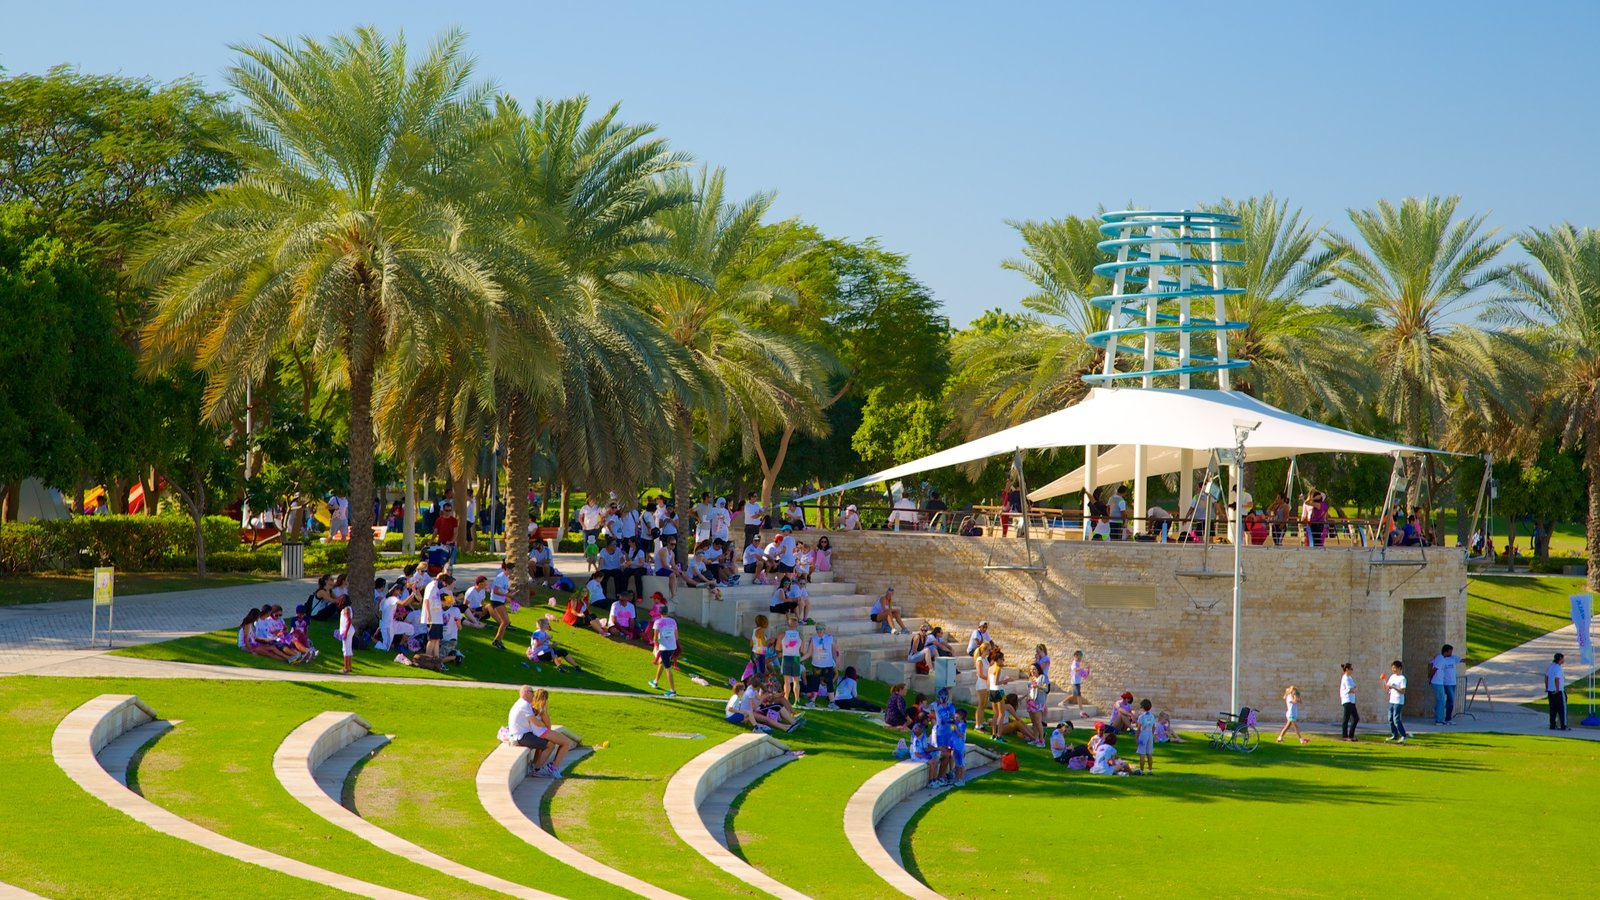 Zabeel Park featuring a park as well as a large group of people